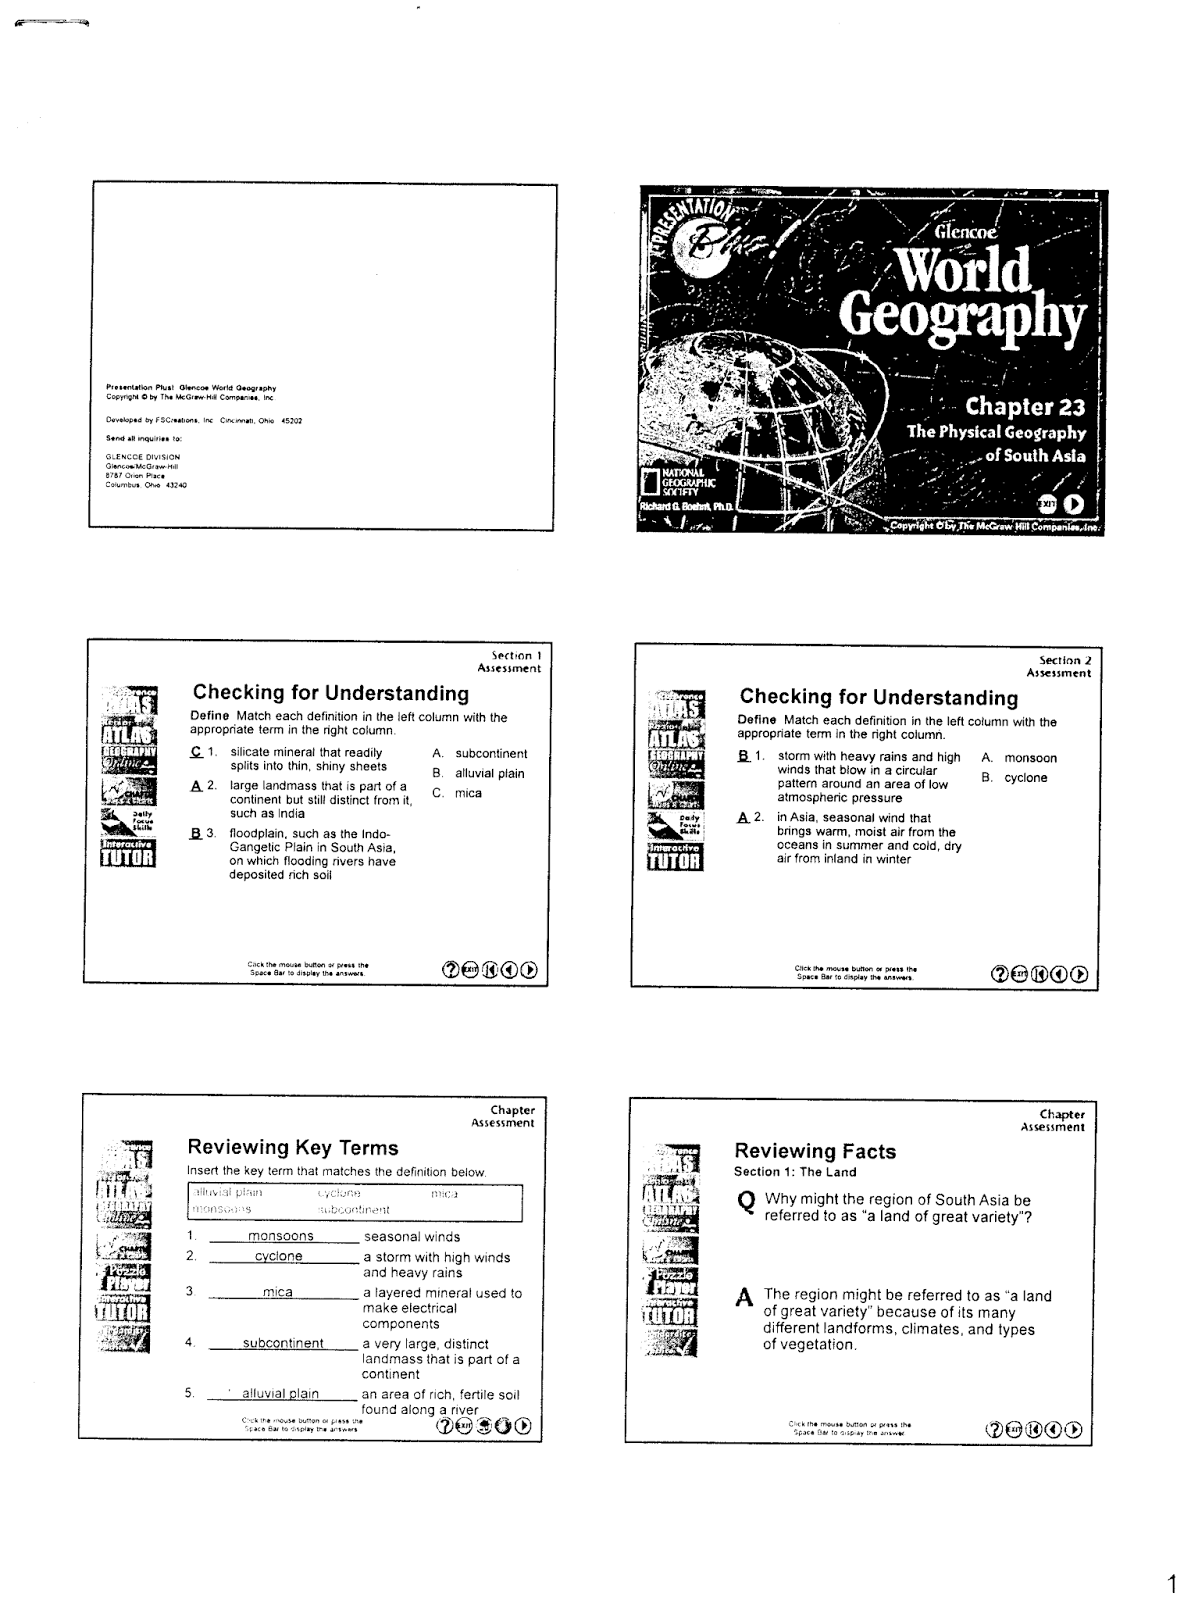 Worksheets Glencoe World Geography Worksheets glencoe world geography worksheets checks worksheet mr e s page chapter 23 the